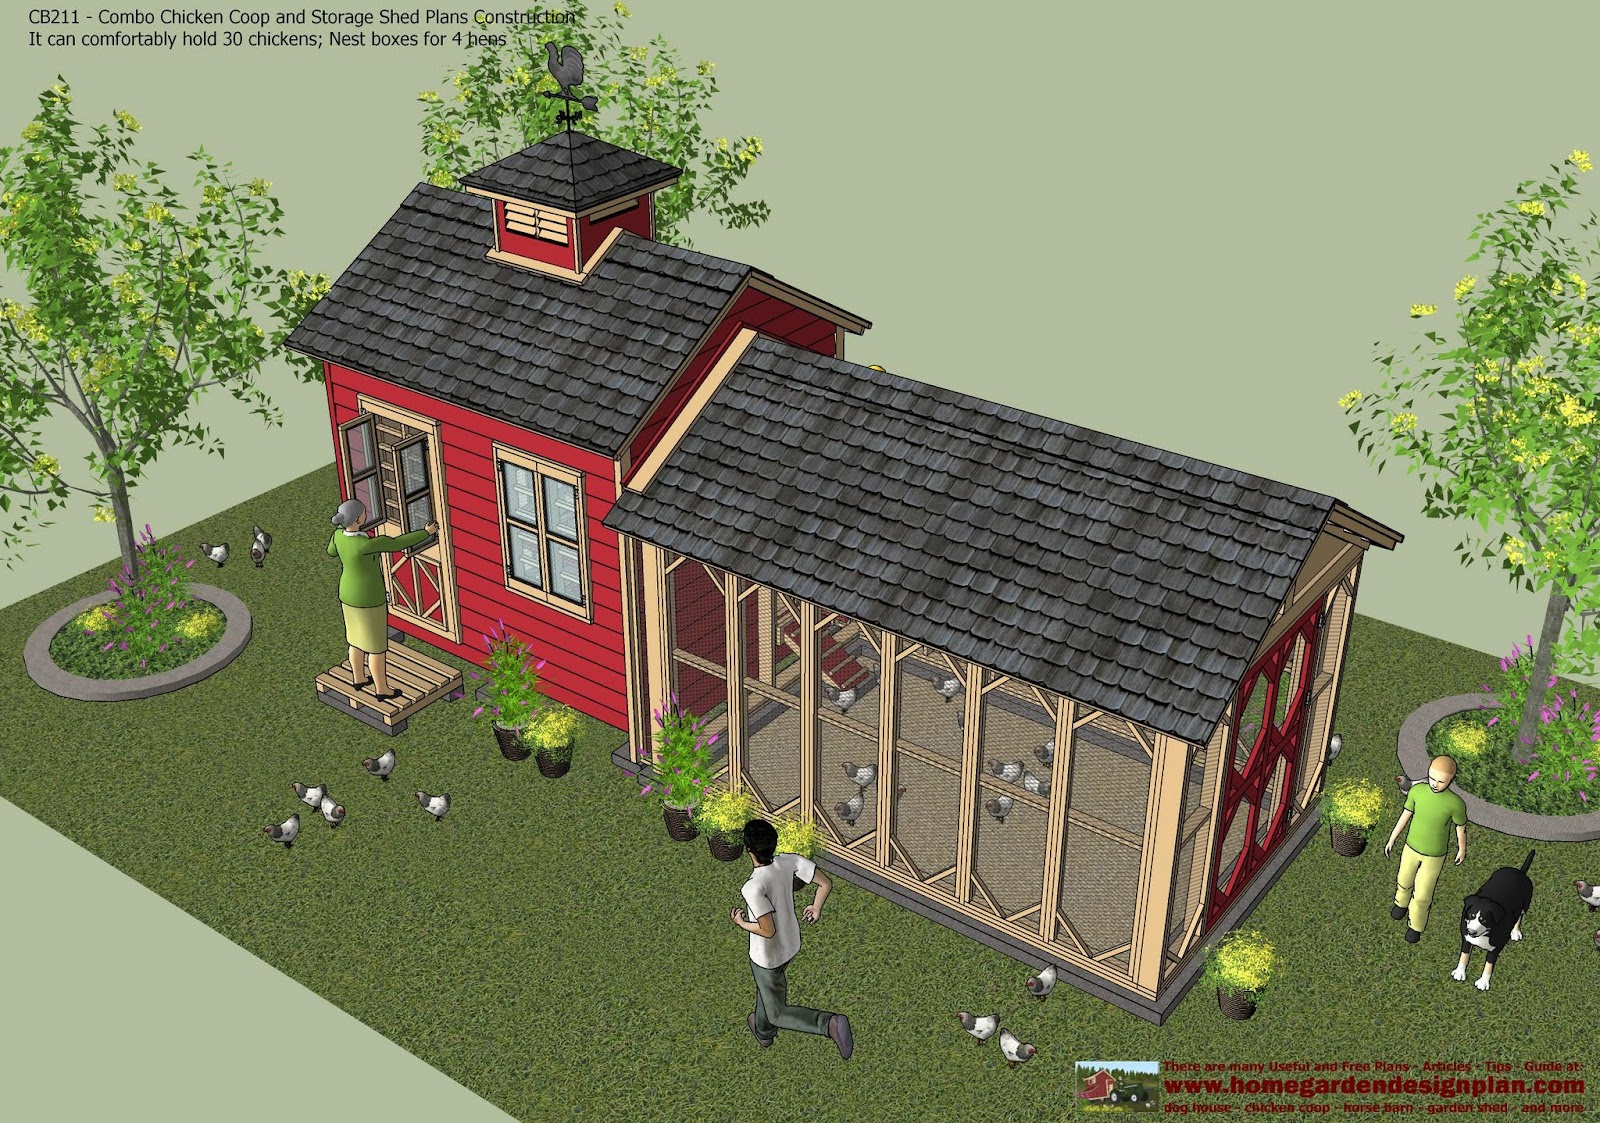 Home Garden Plans Cb211 Combo Chicken Coop Garden Shed